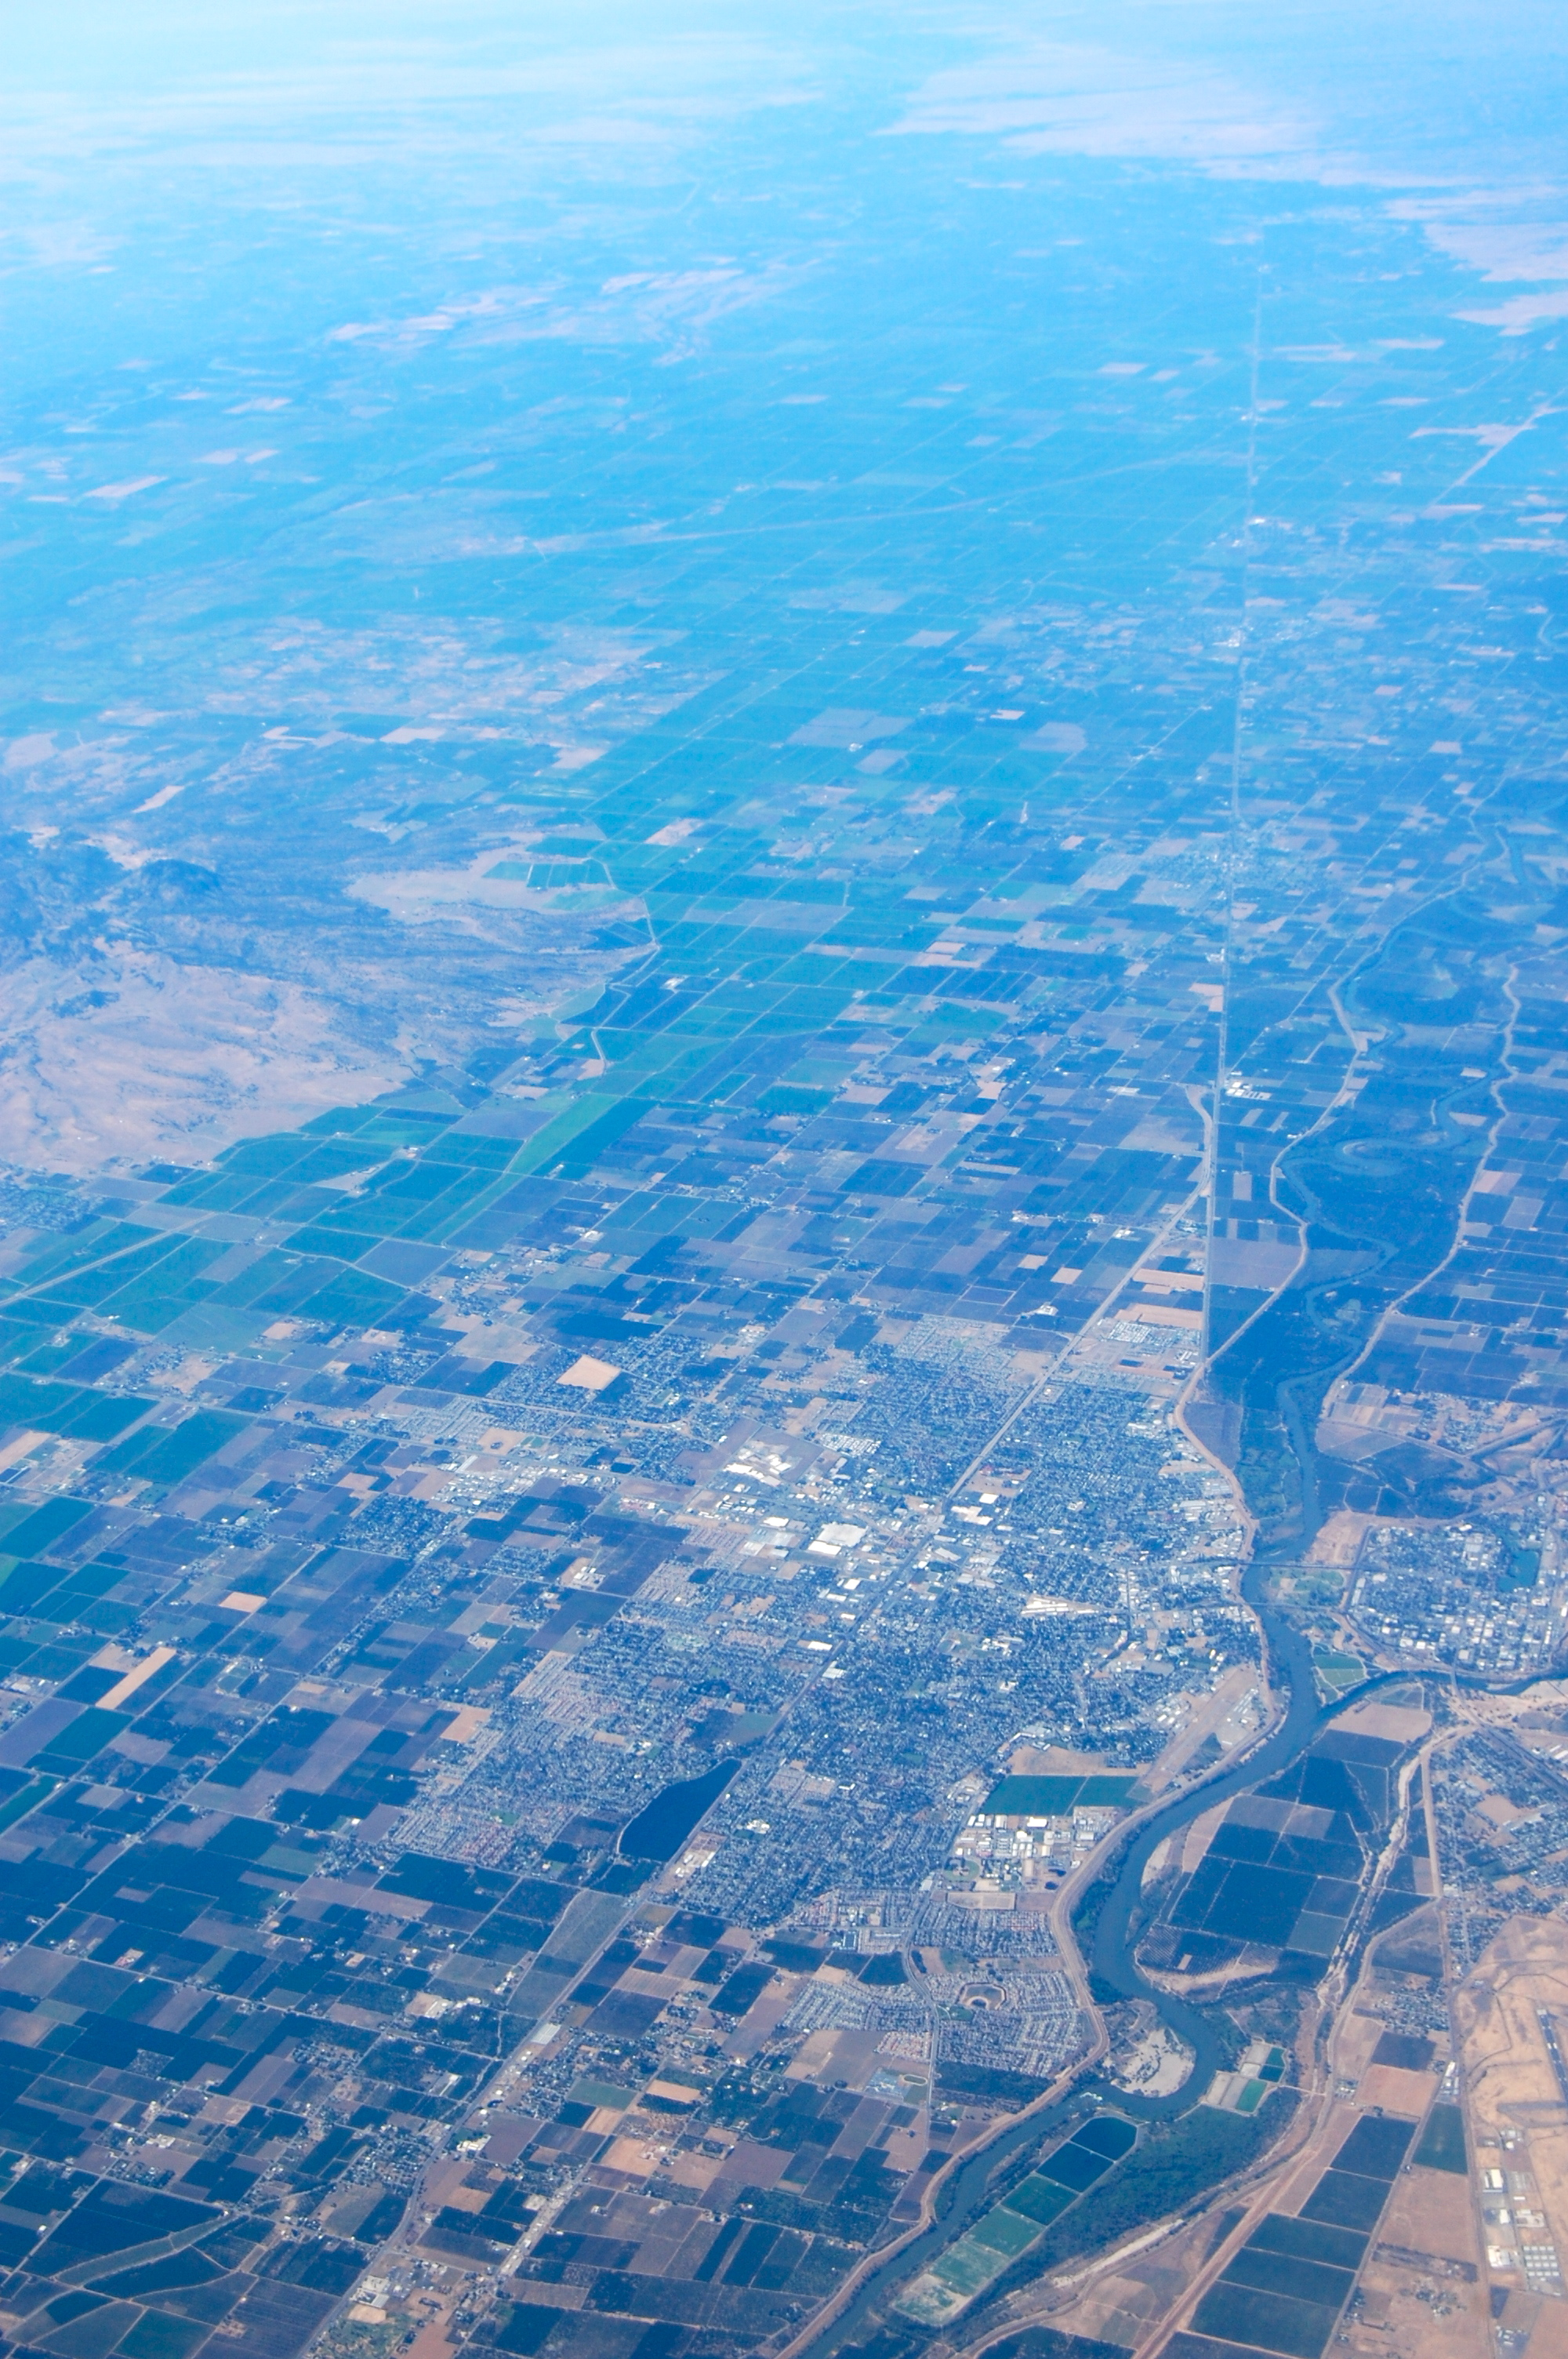 File:Yuba City CA From Air.jpg - Wikimedia Commonsyuba city city